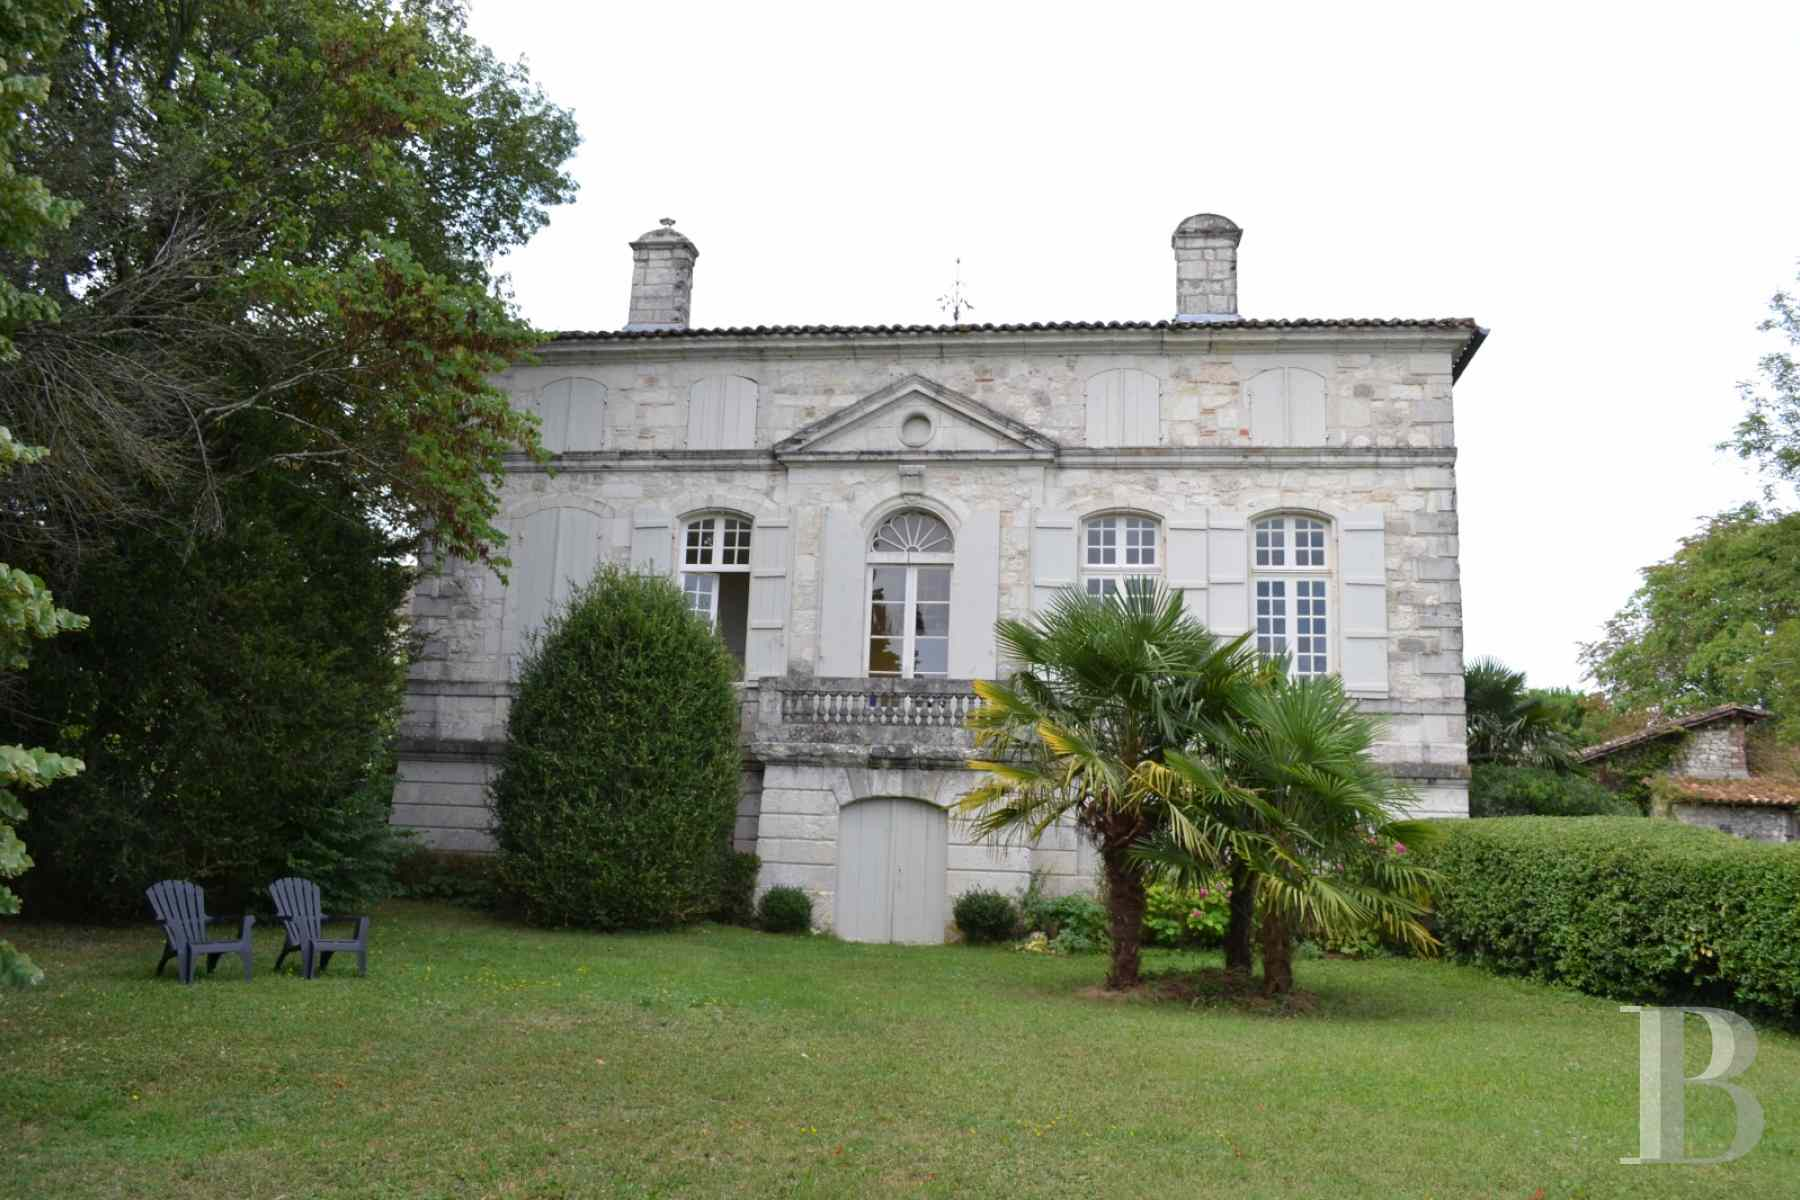 property for sale France aquitaine property 18th - 4 zoom